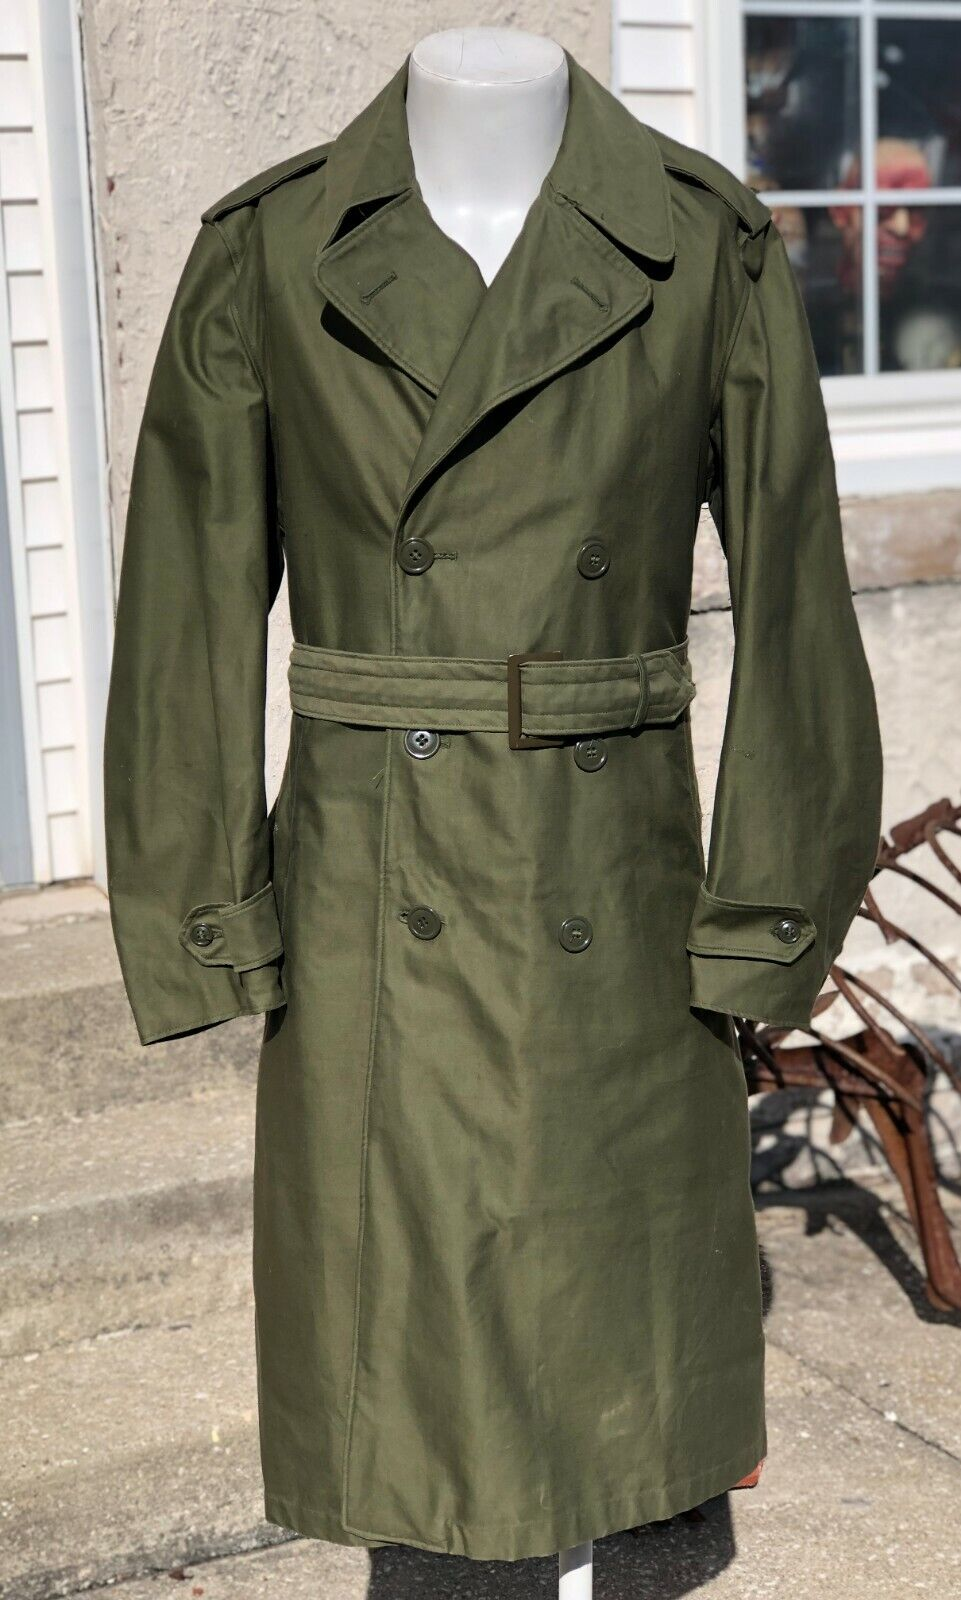 Vintage 1982 United States Army Green Drab Full Length Trench Watch Coat Size S